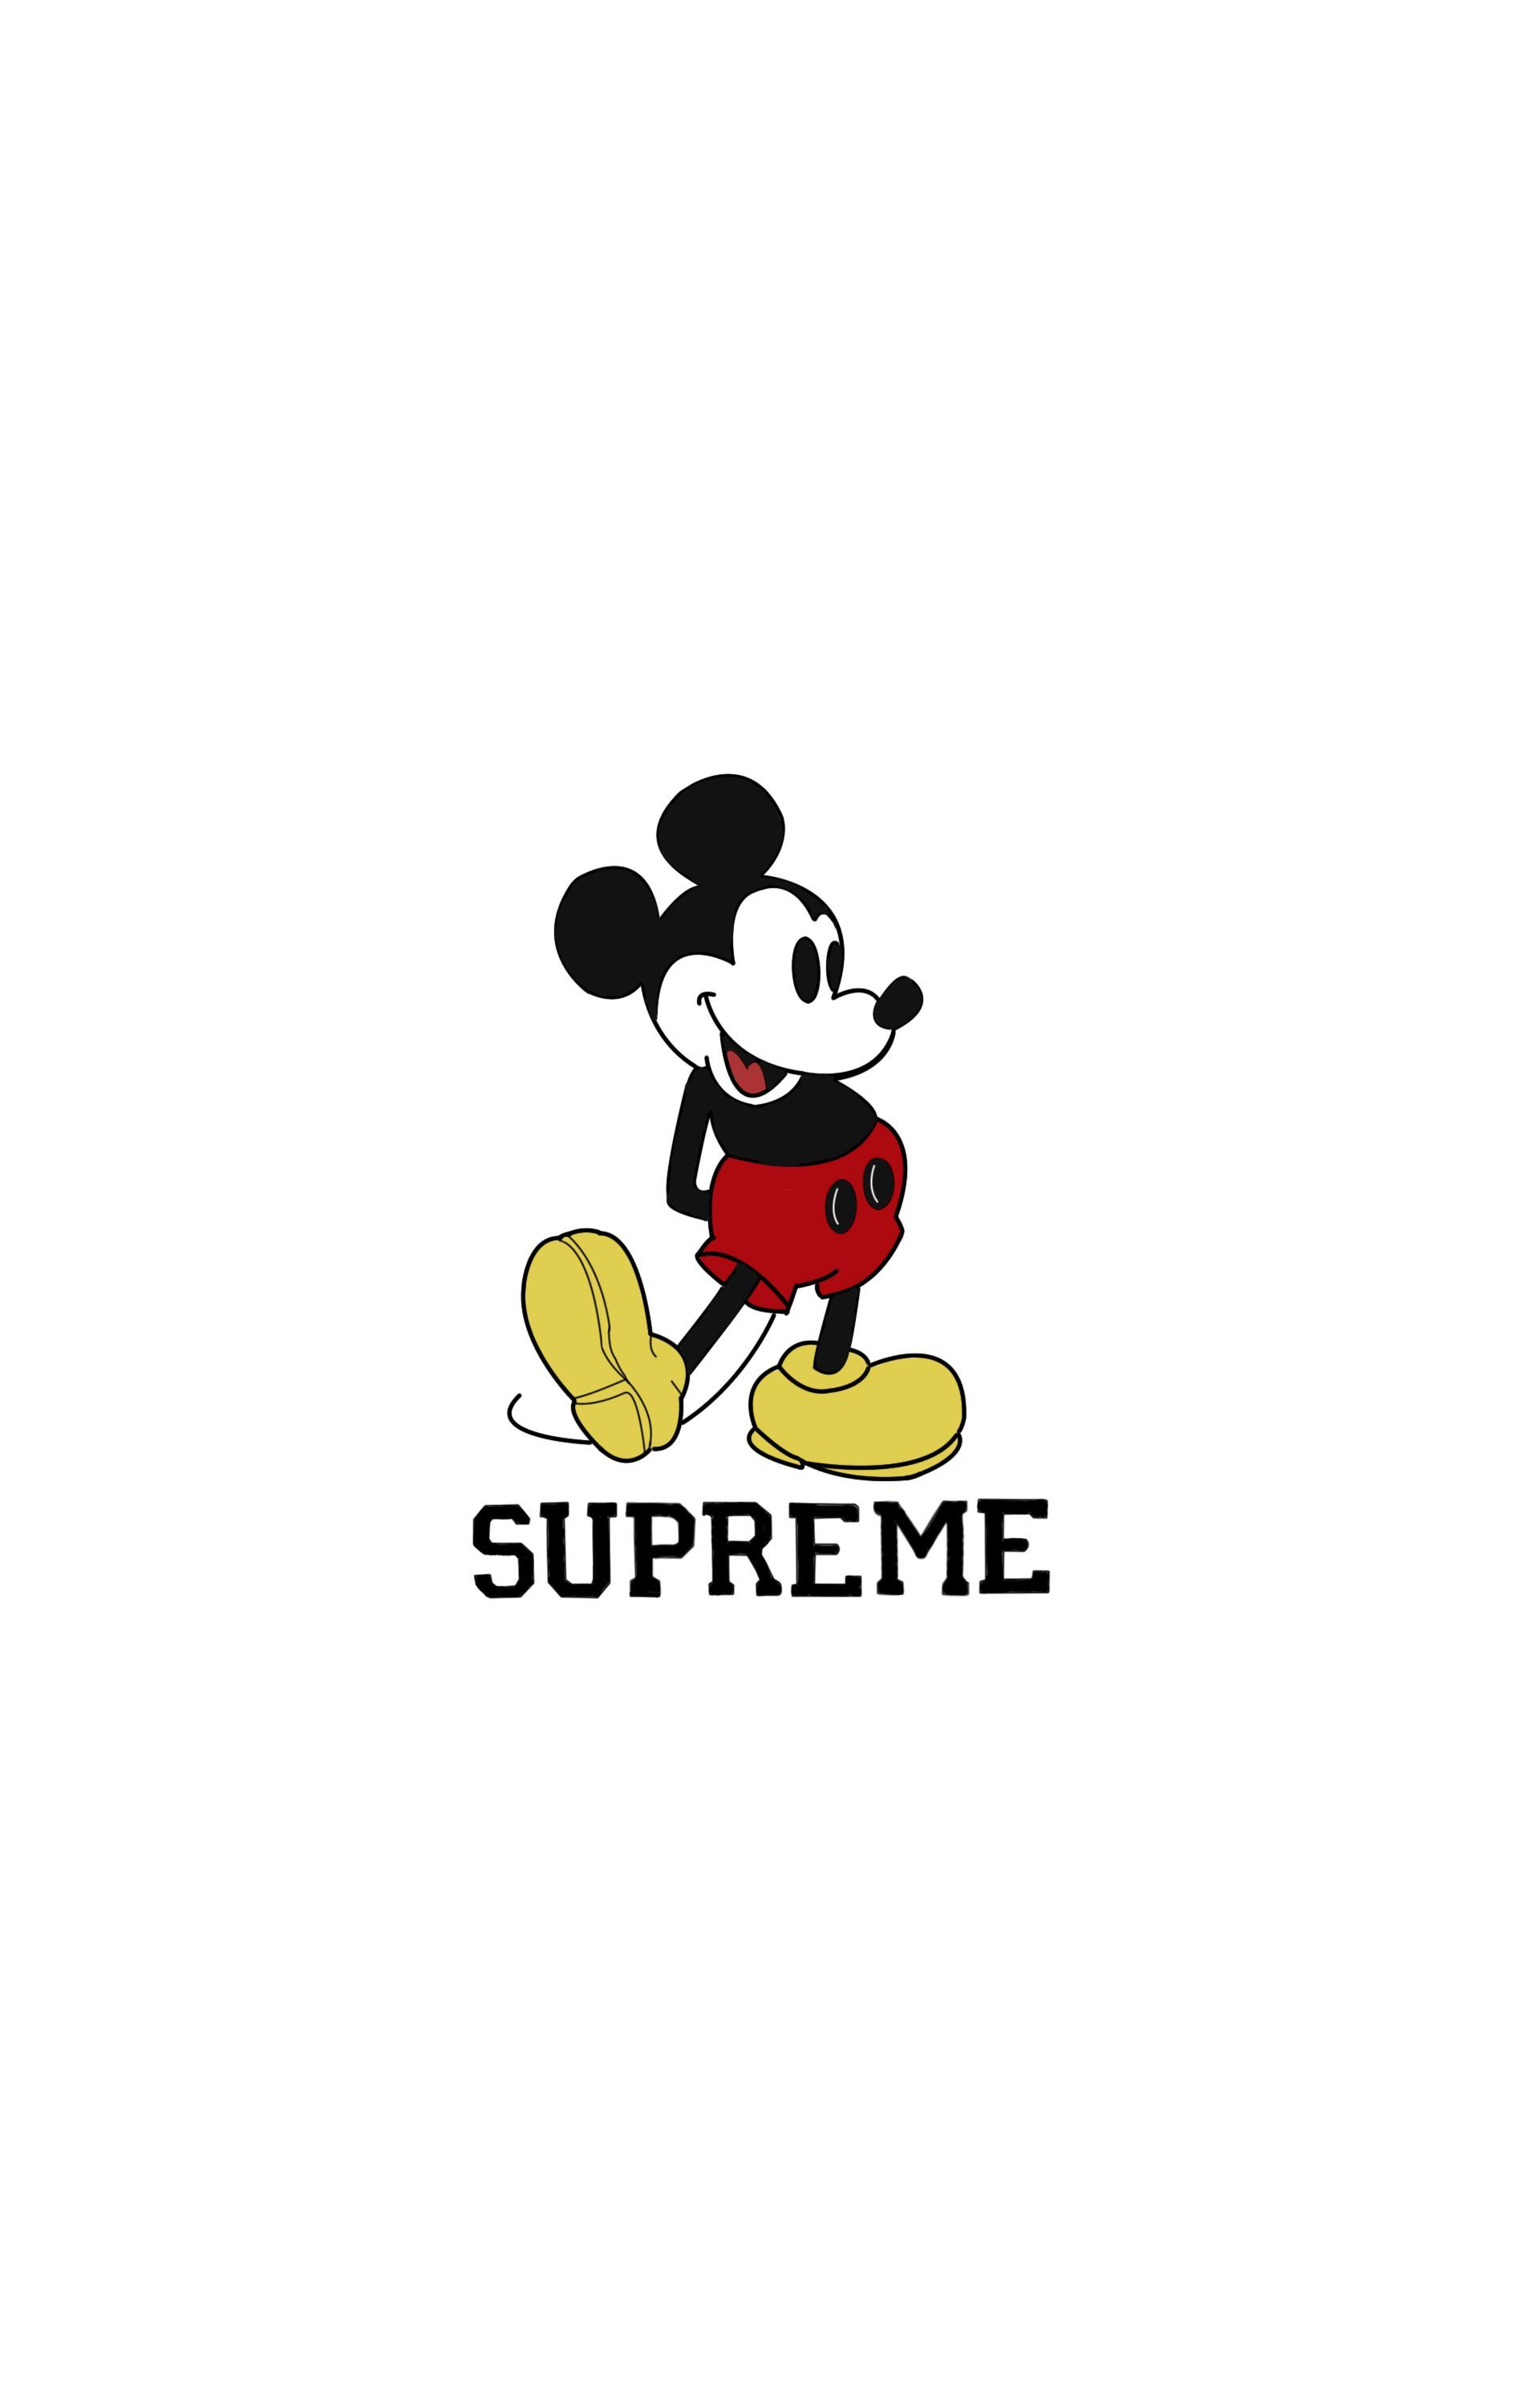 Mickey Mouse Supreme Iphone Wallpapers On Wallpaperdog